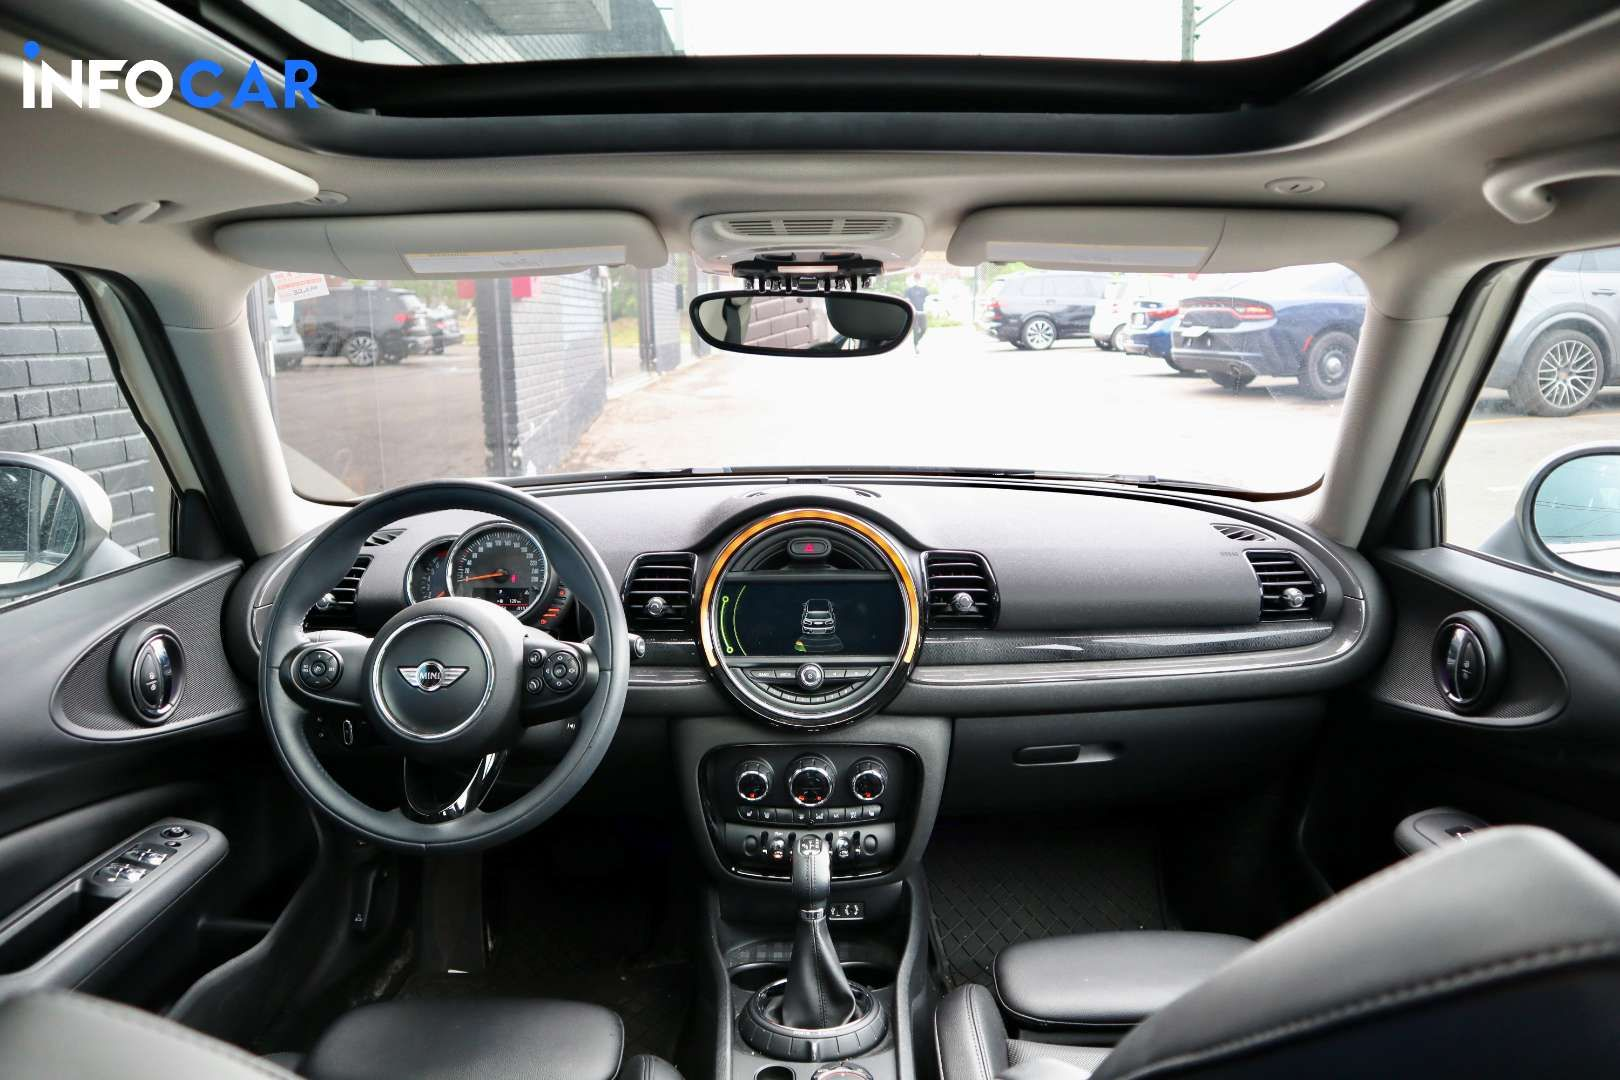 2016 MINI Clubman Cooper - INFOCAR - Toronto's Most Comprehensive New and Used Auto Trading Platform